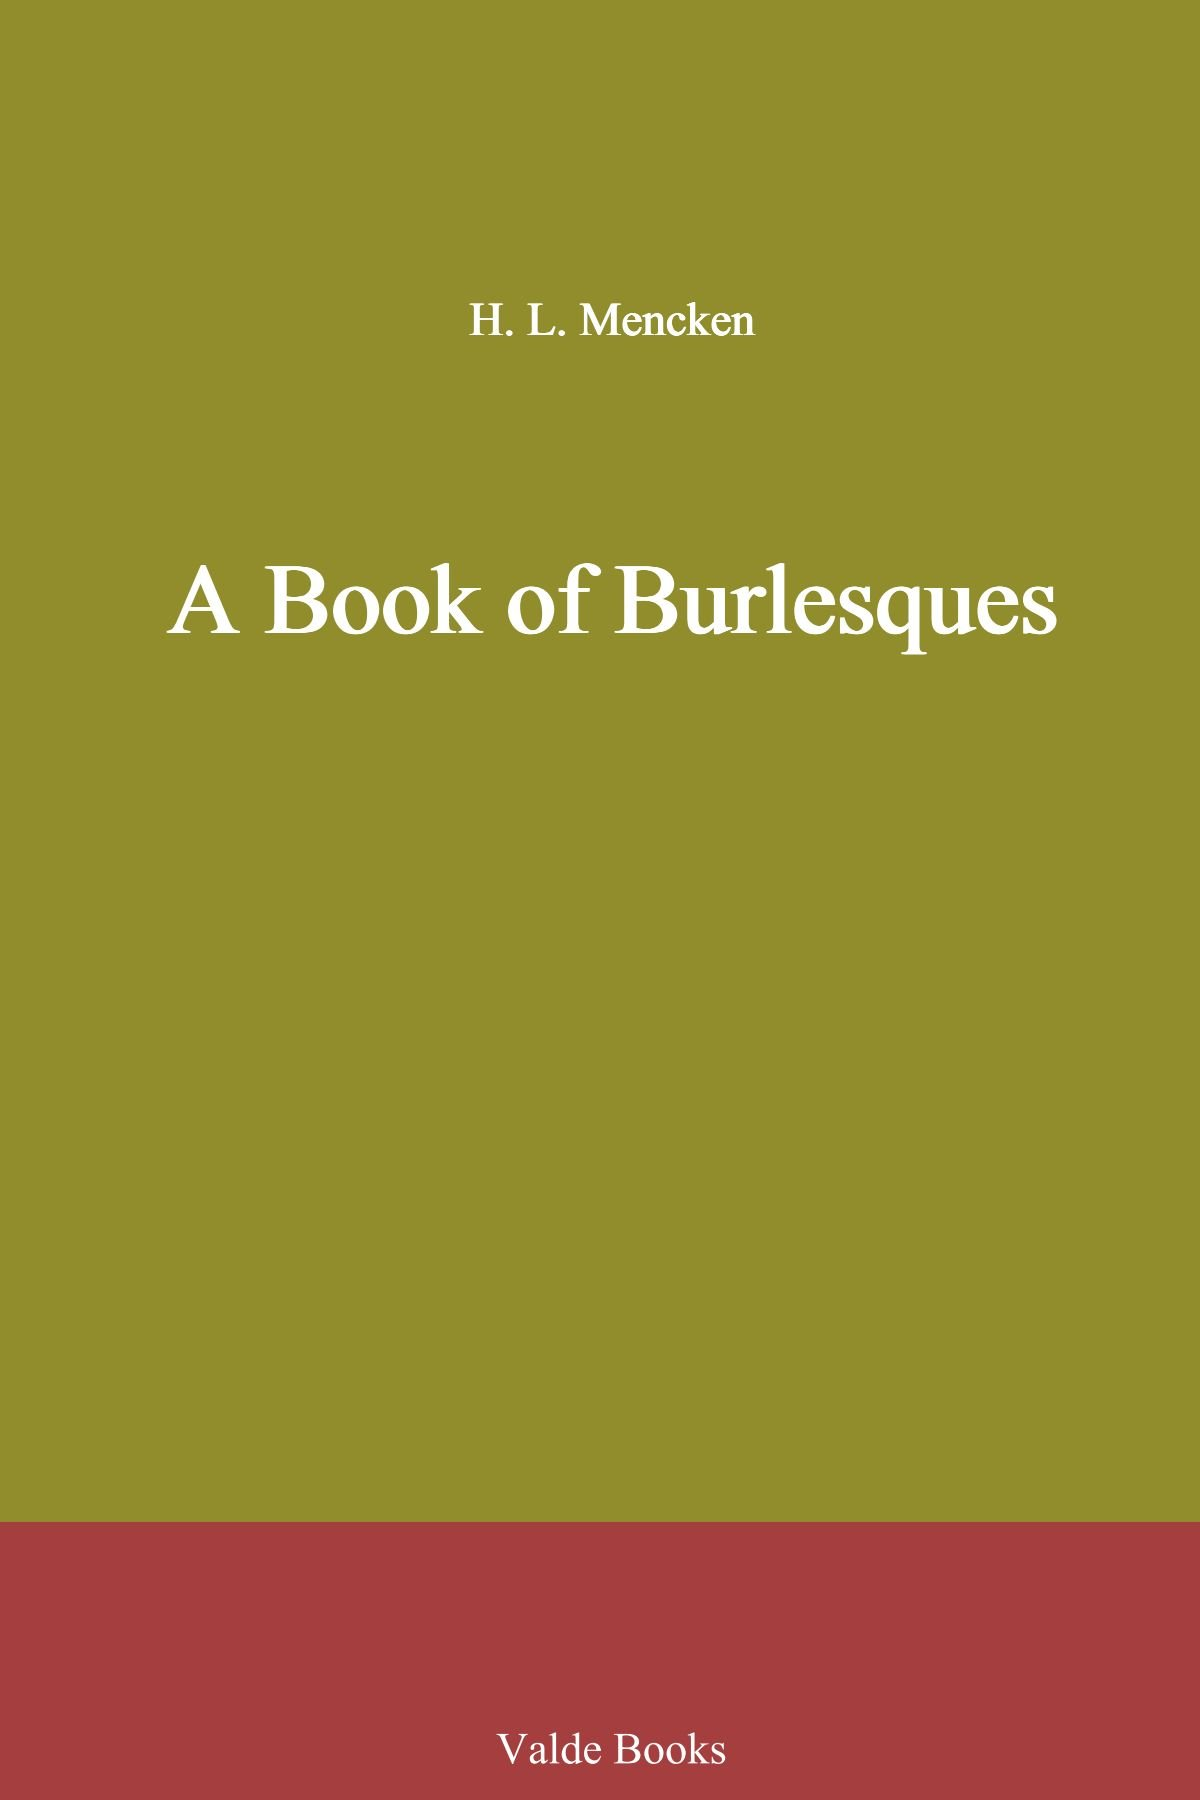 Title: A Book of Burlesques